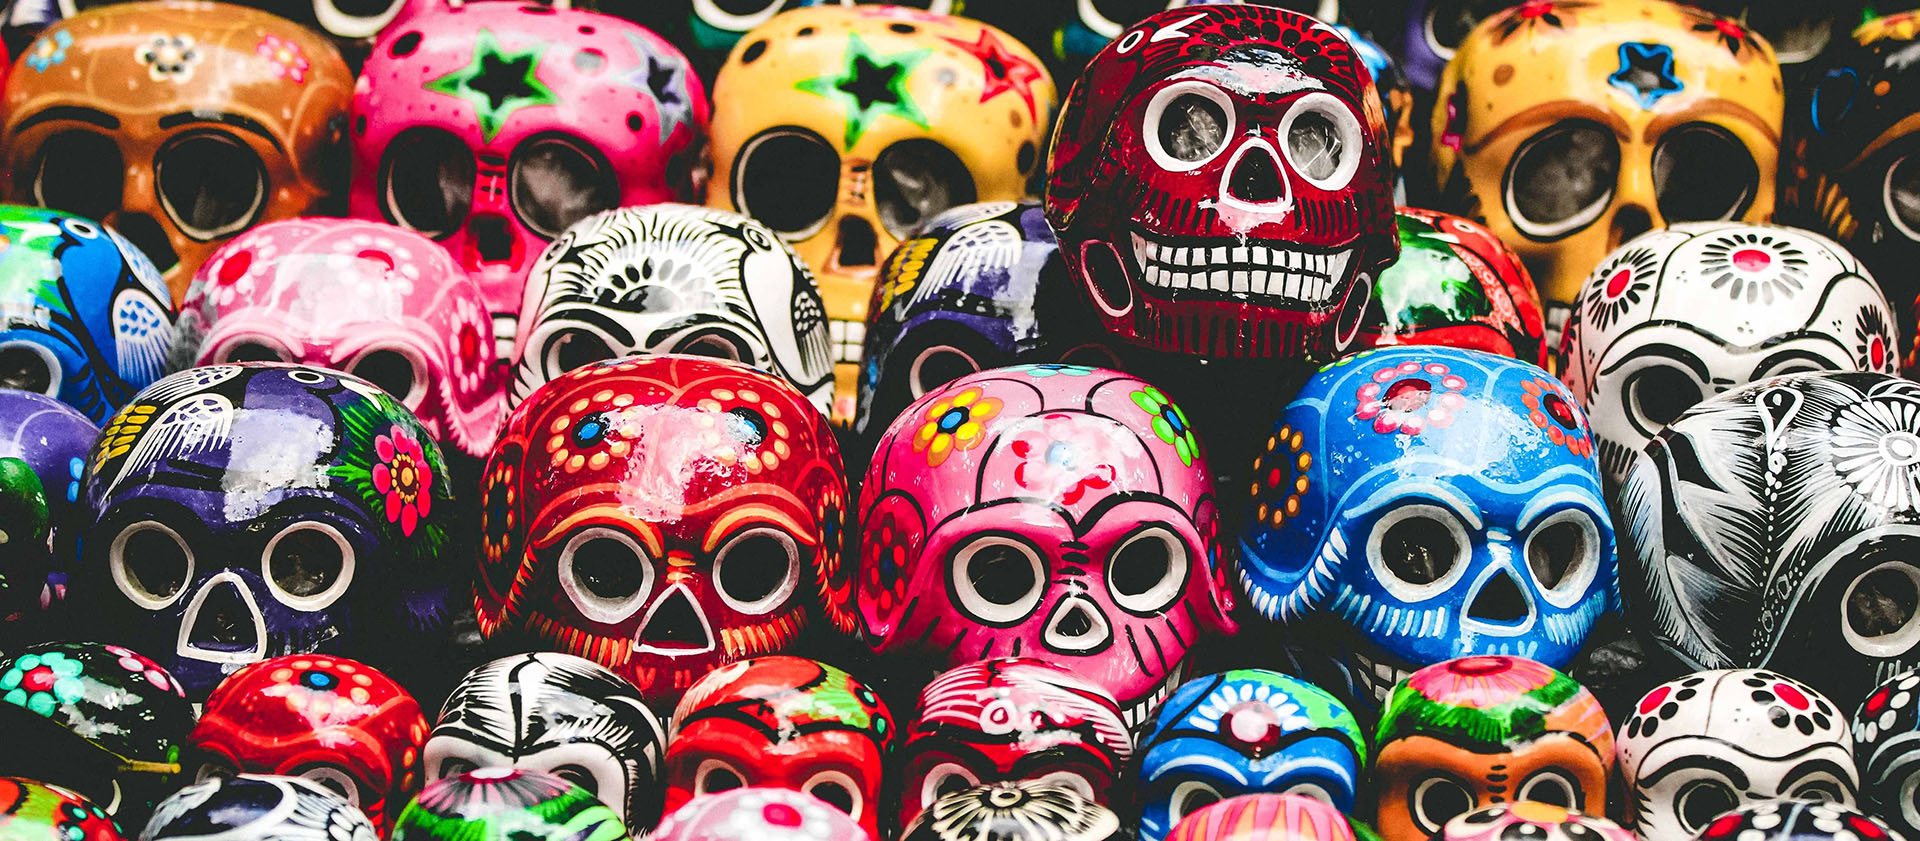 Sugar skulls from Dia de los muertos in Sante Fe